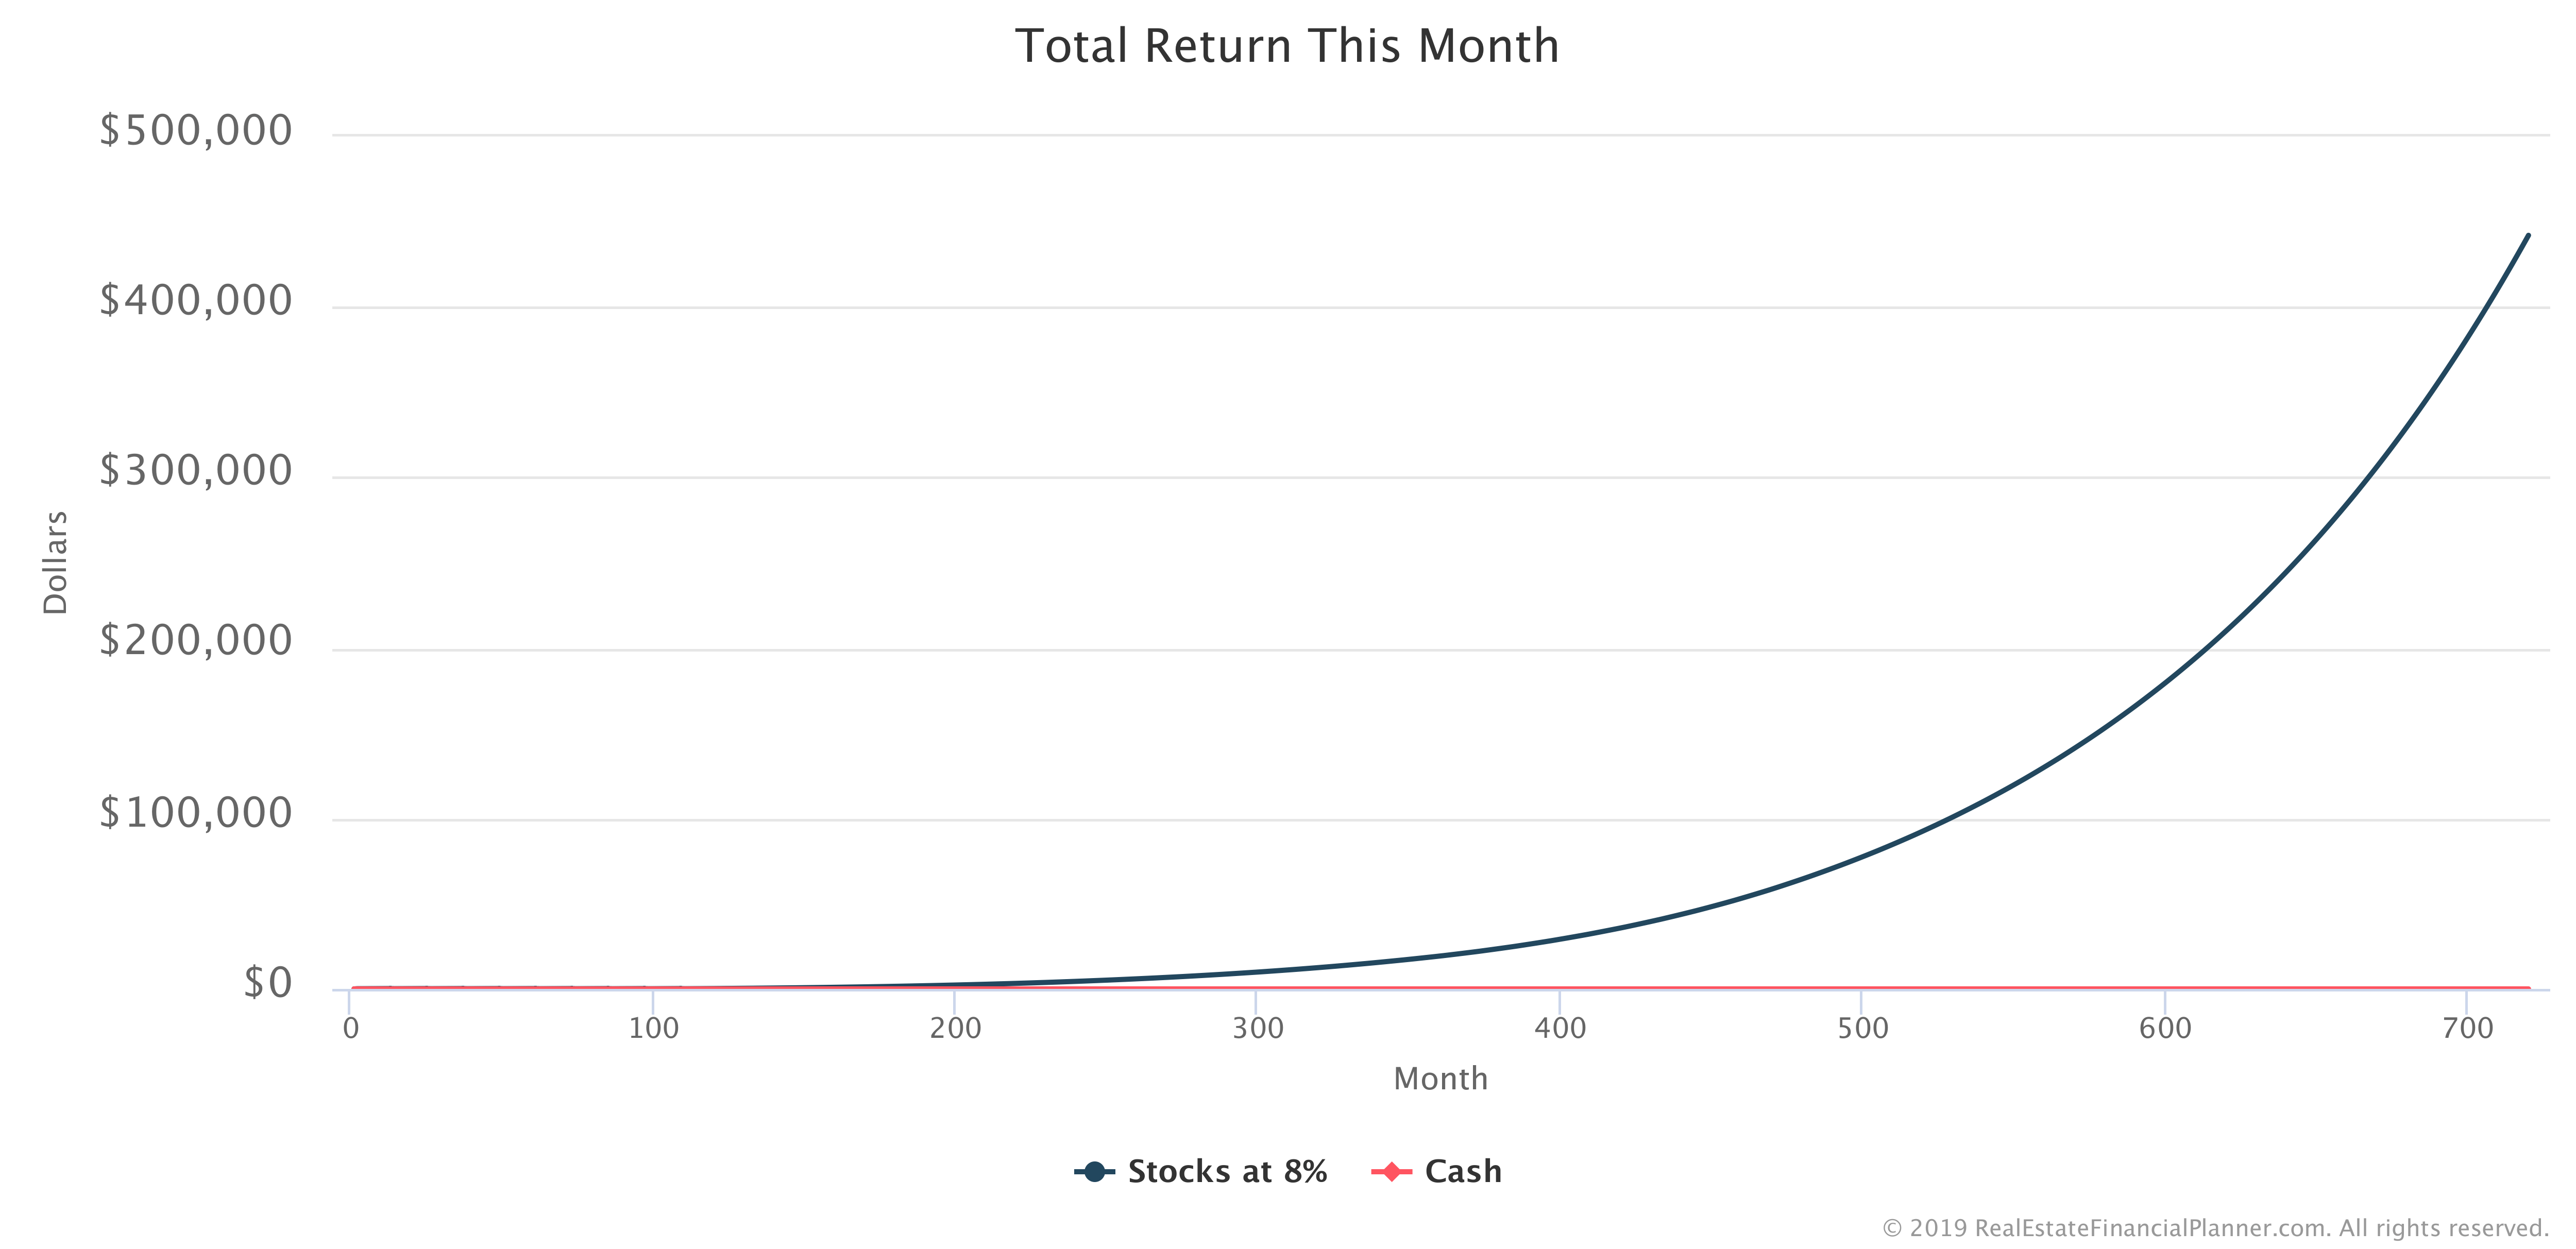 Total Return This Month